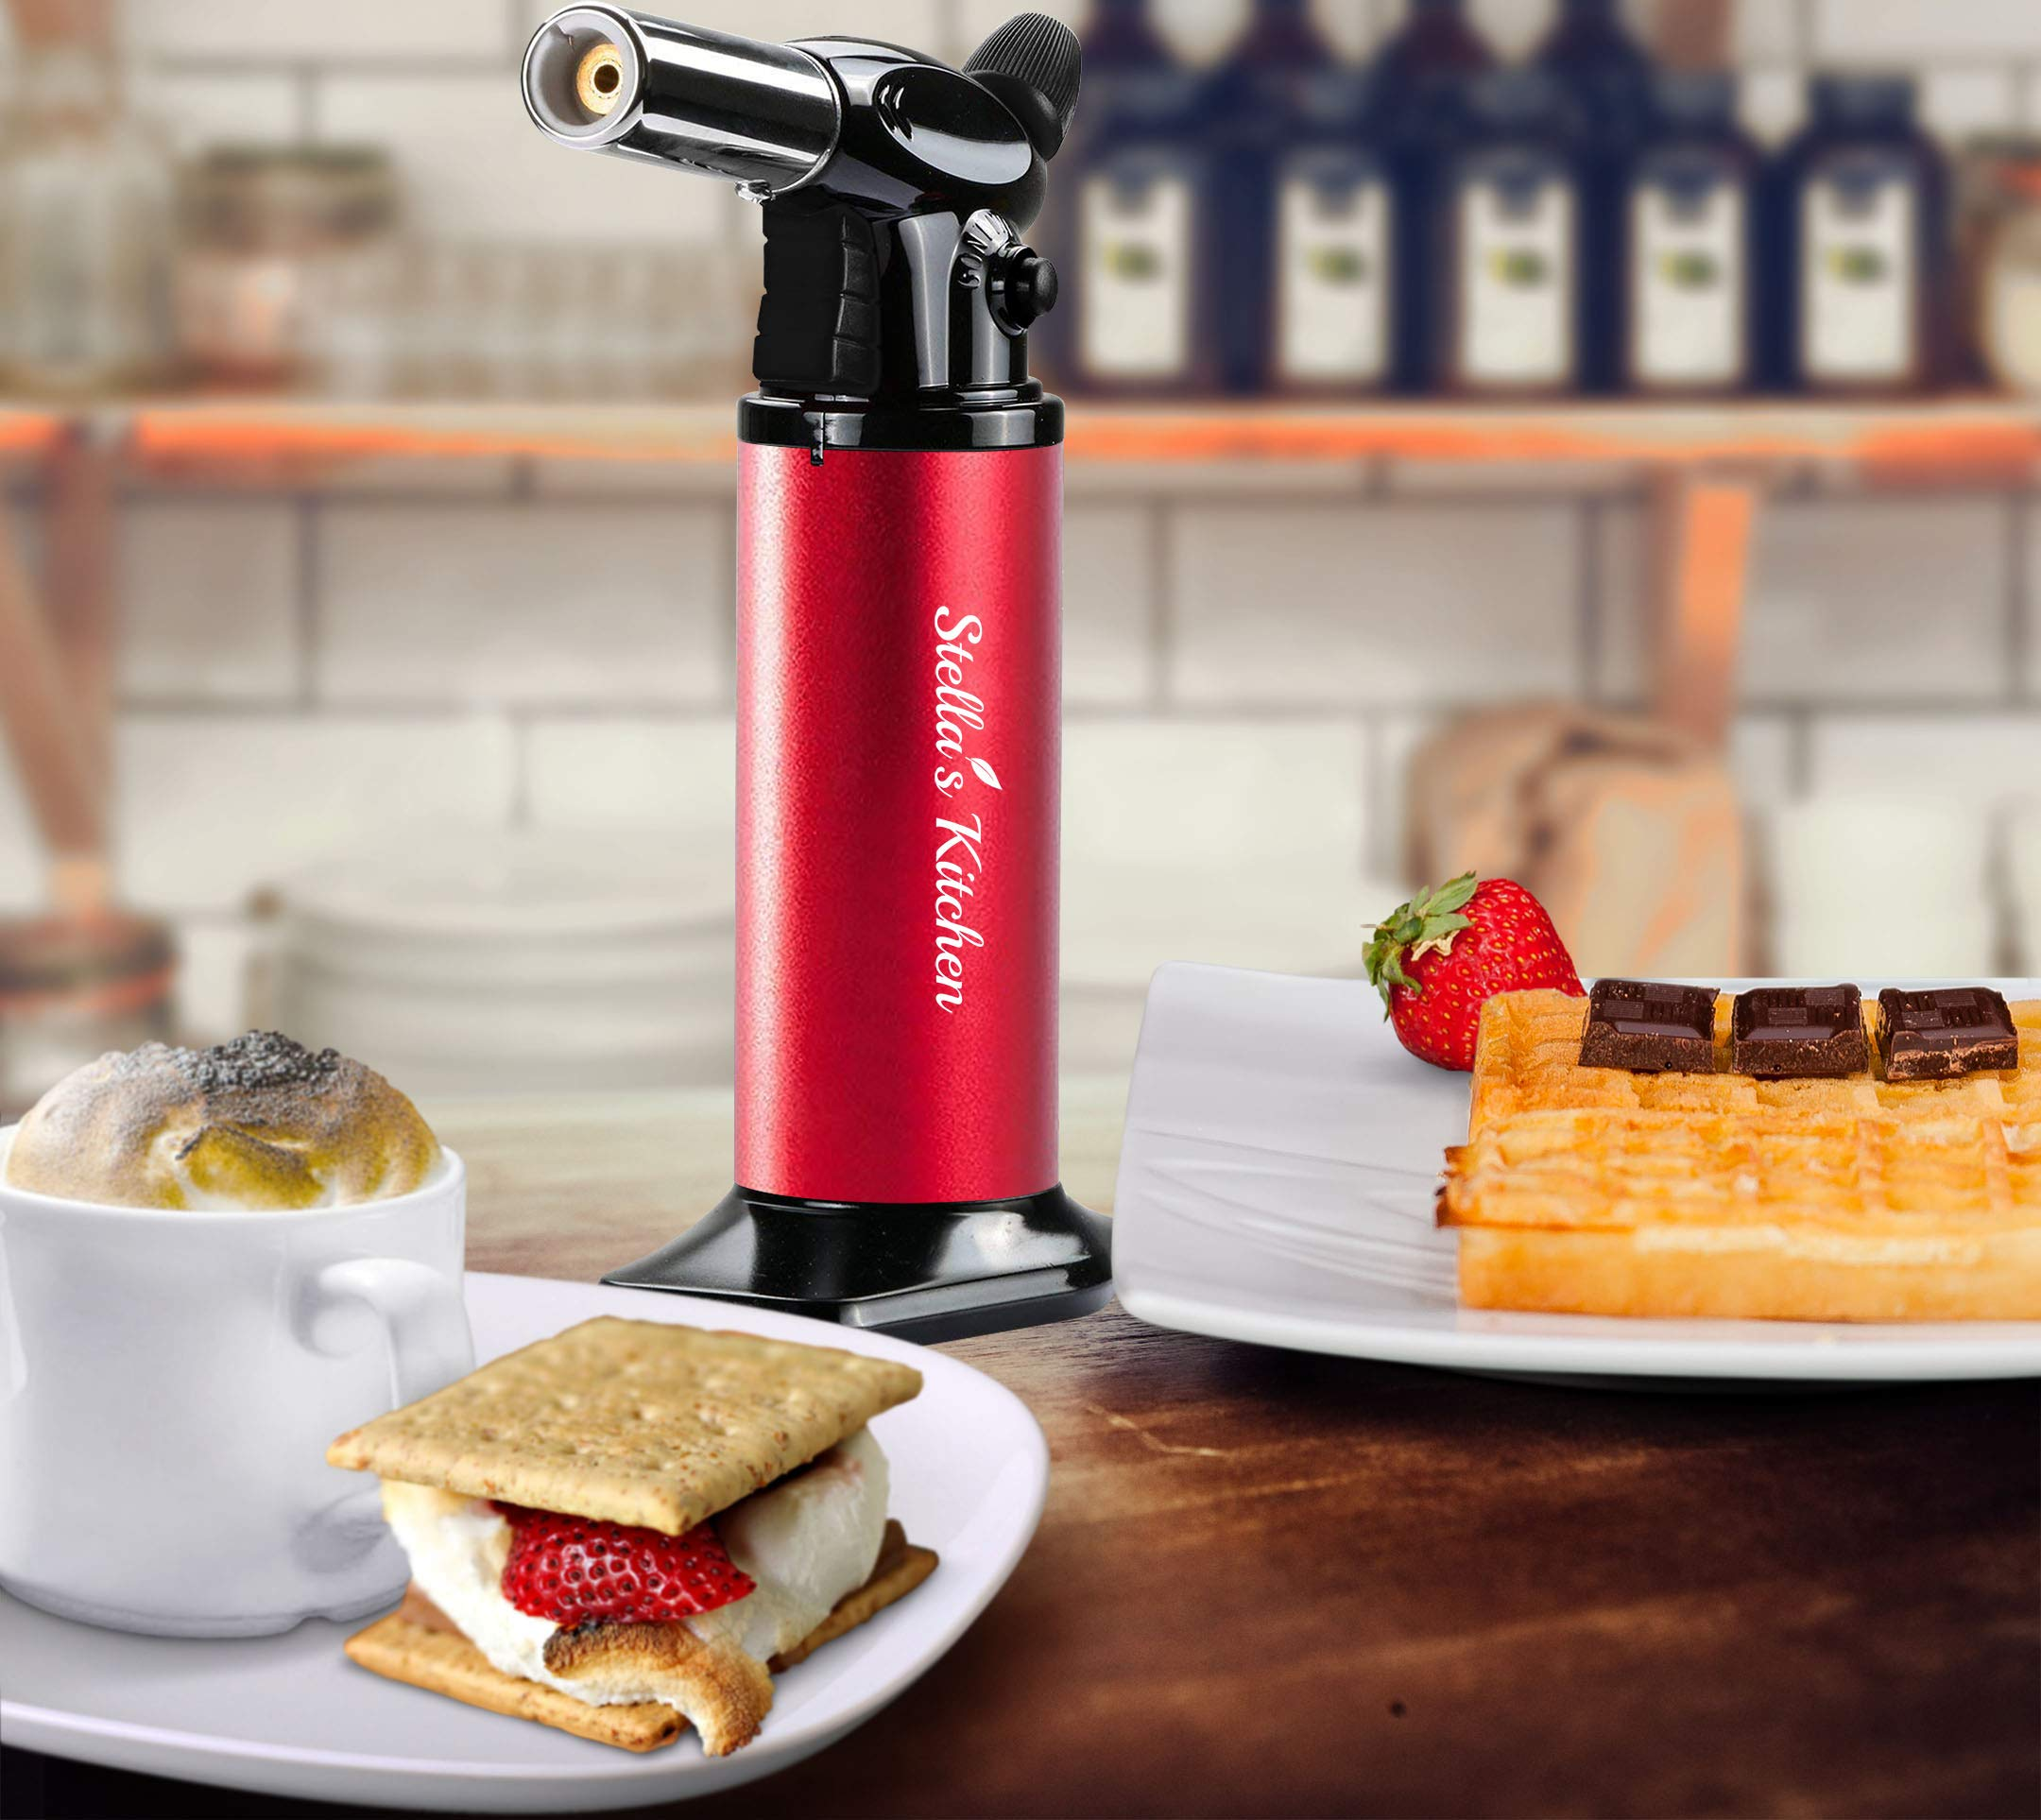 Culinary Torch - 3 Pcs Set-Creme Brulee Torch-Refillable Butane Torch-Blow Torch-Cooking Torch - Butane Food Torch- Torch for Dabs with Fuel Gauge&Adjustable Flame-Chefs Torch- Butane Torch by Stella's Kitchen (Image #1)